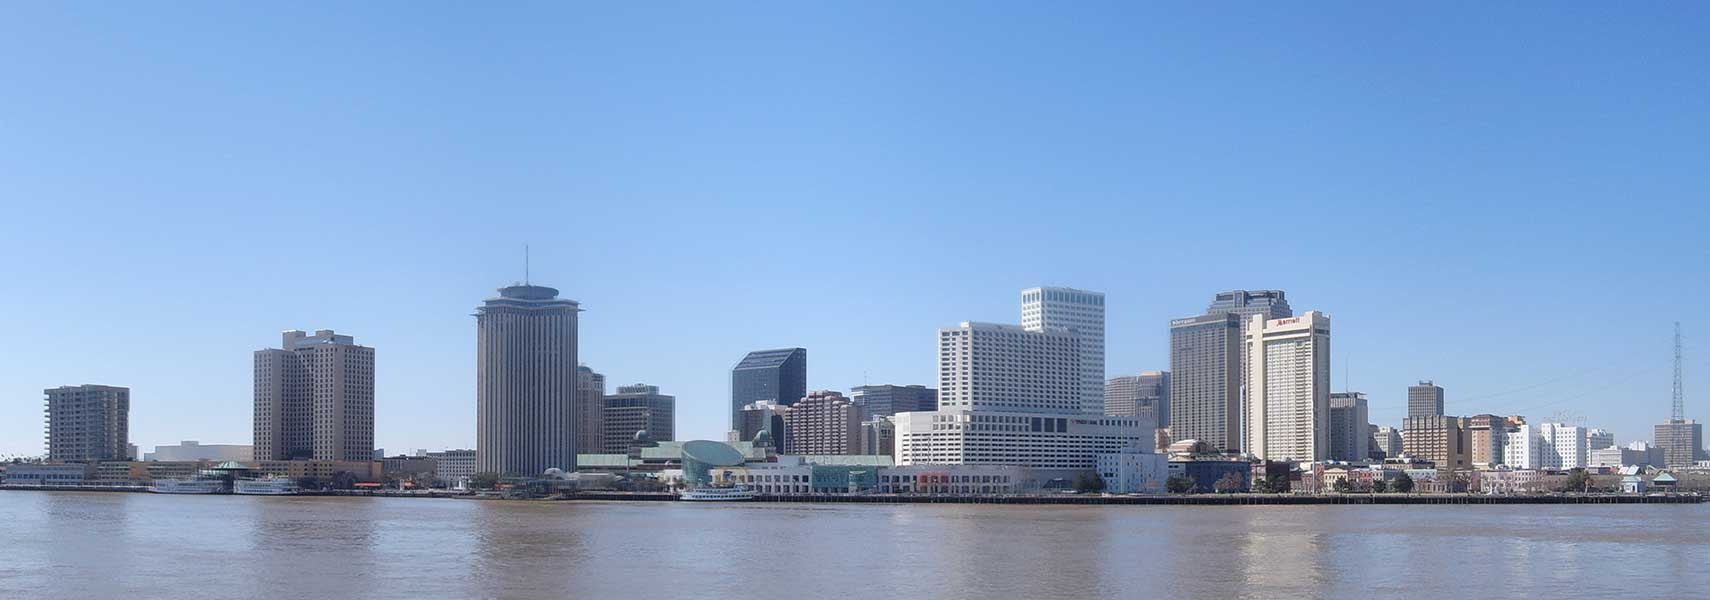 Google Map Of New Orleans Louisiana USA Nations Online Project - New orleans in map of usa